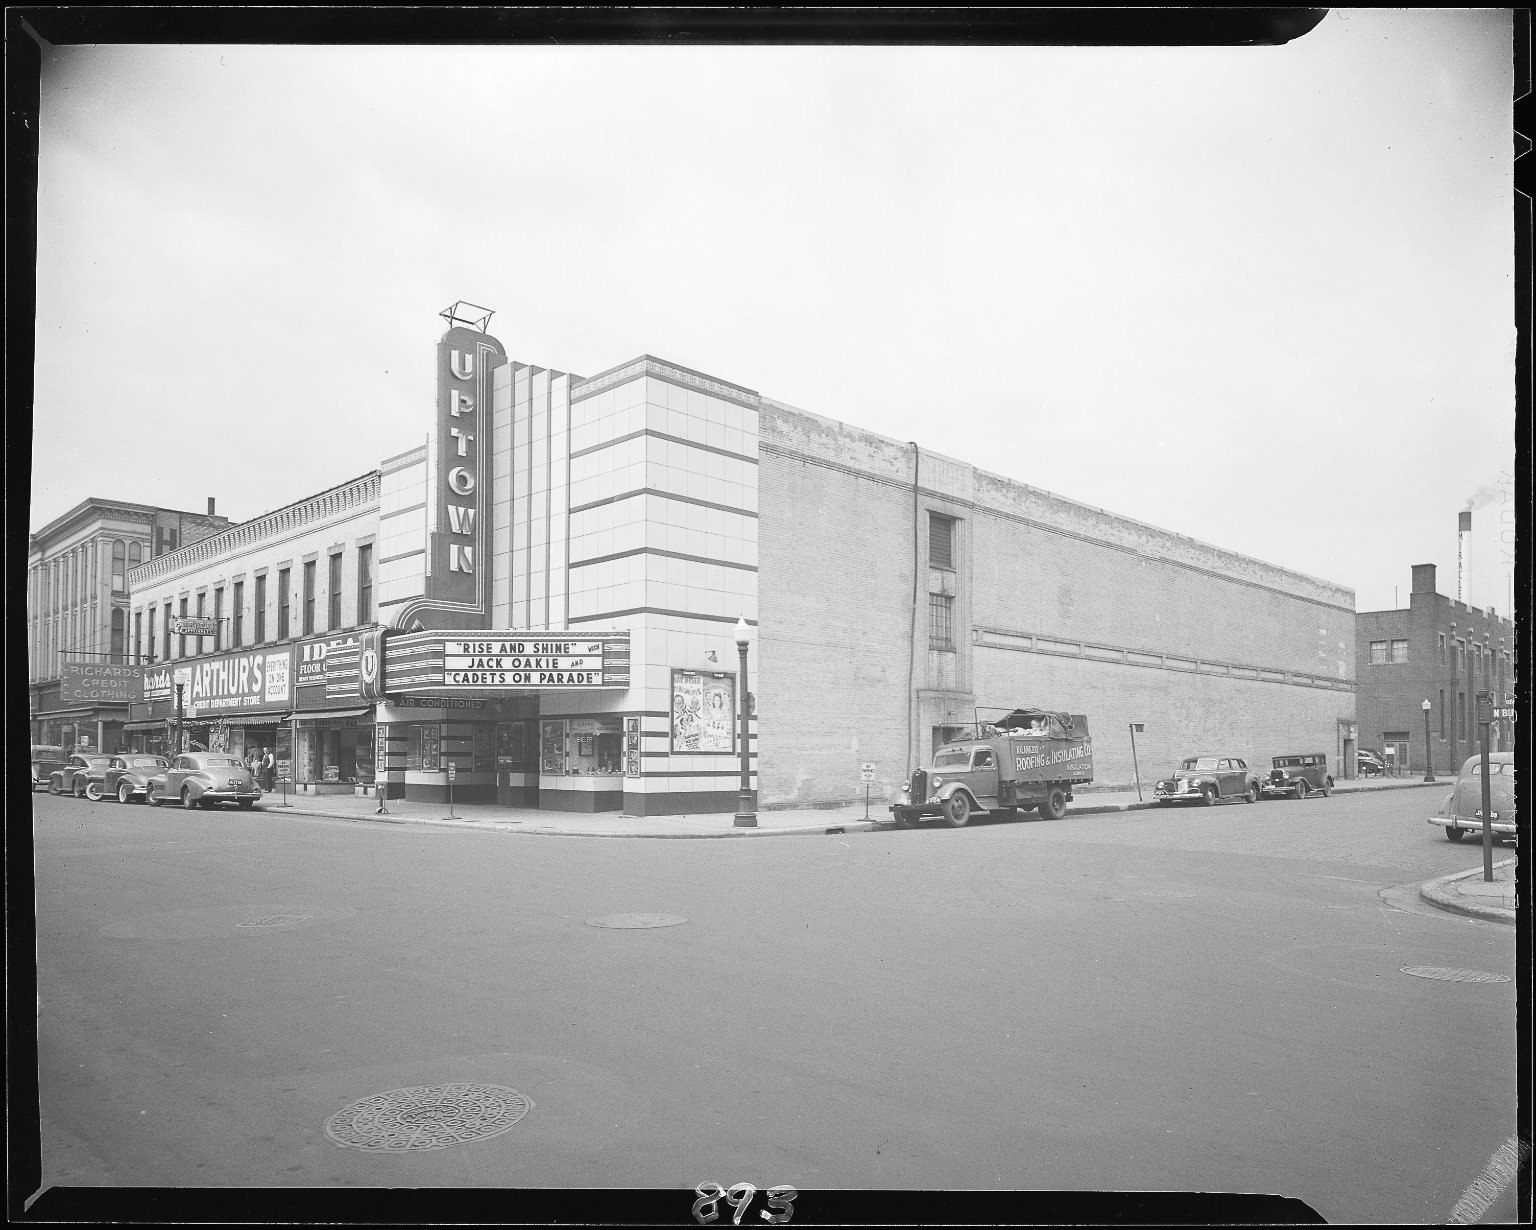 Uptown Theater, exterior